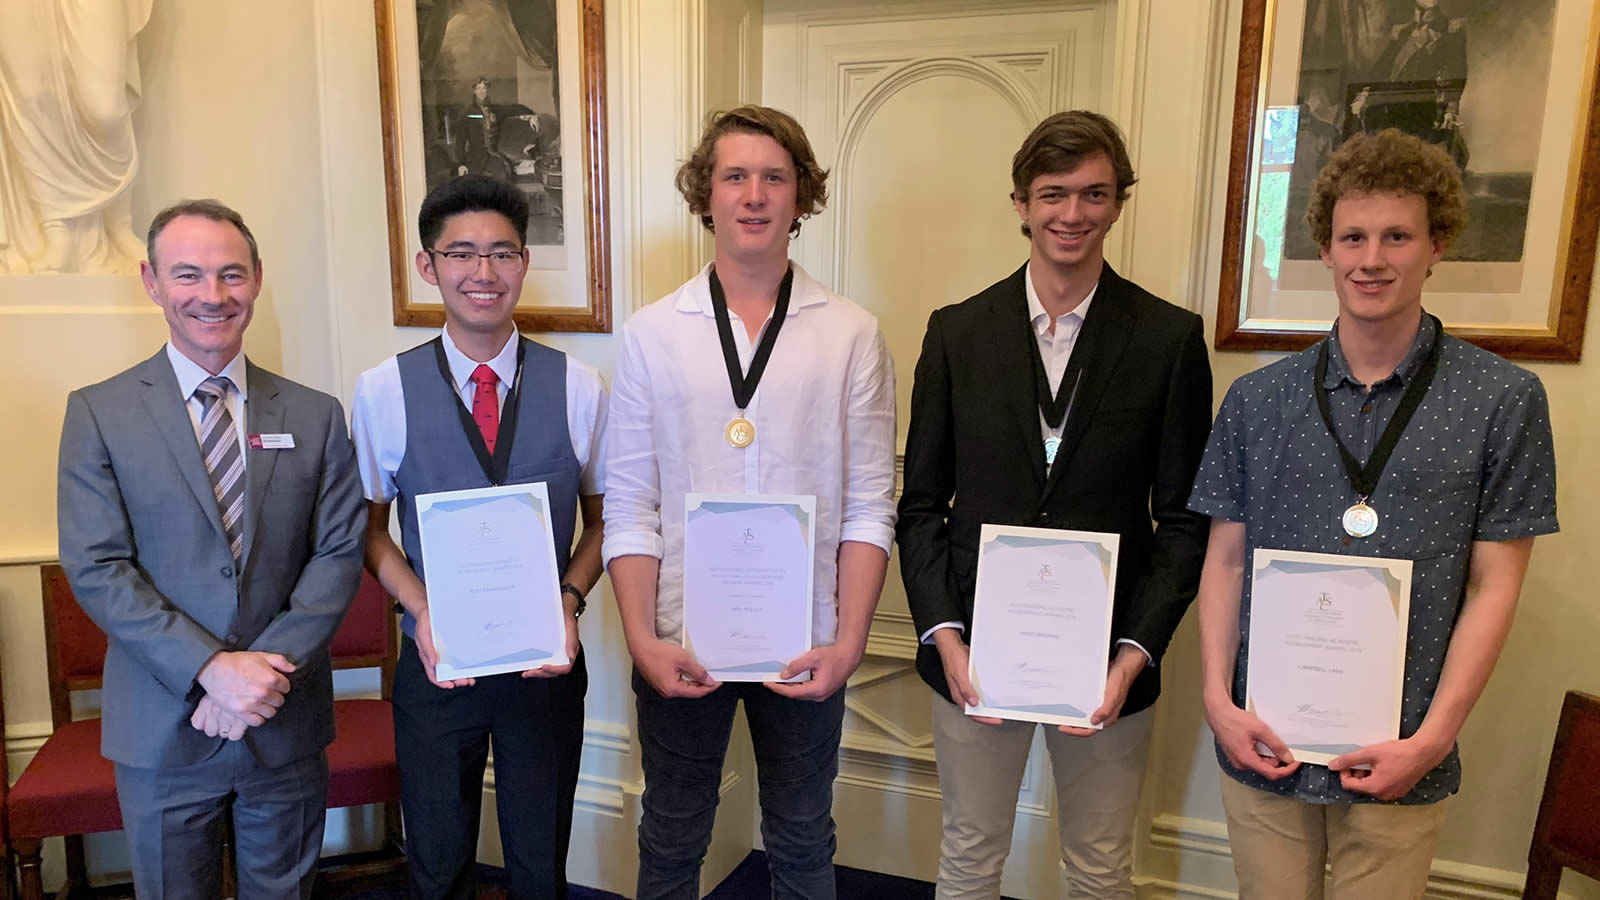 Headmaster Dr Rob McEwan, Koh Kawaguchi ('18), Will Polley ('18), James Browne ('18) and Campbell Lane ('18) at the TASC Outstanding Achievement Awards.